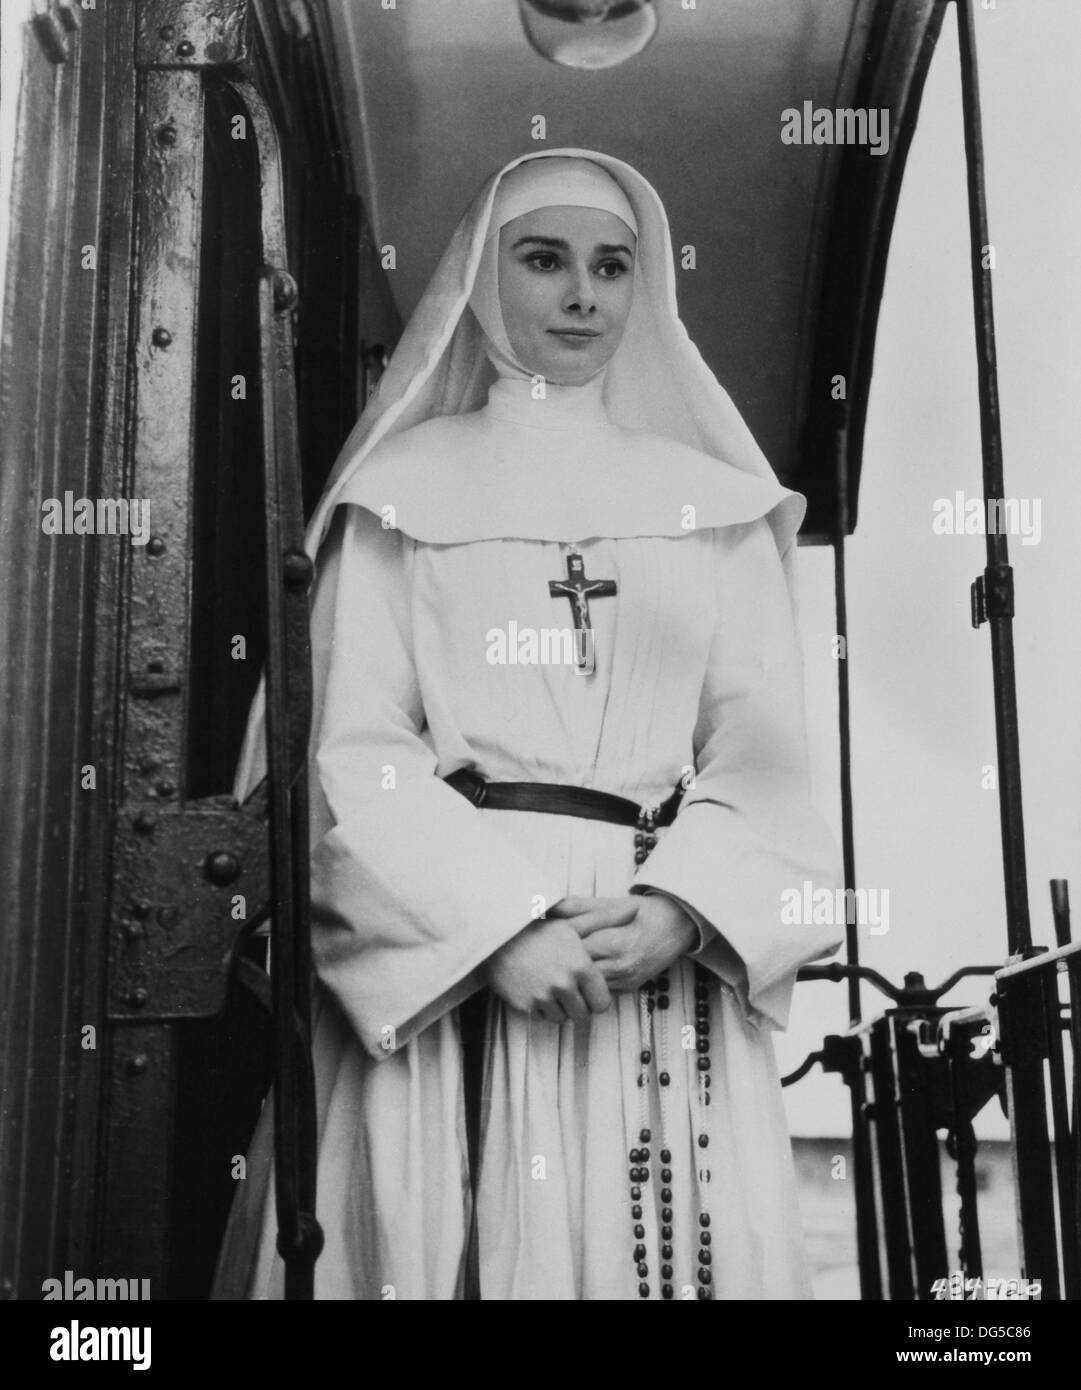 Audrey Hepburn, on-set of the Film, 'The Nun's Story', Warner Bros., 1959 - Stock Image